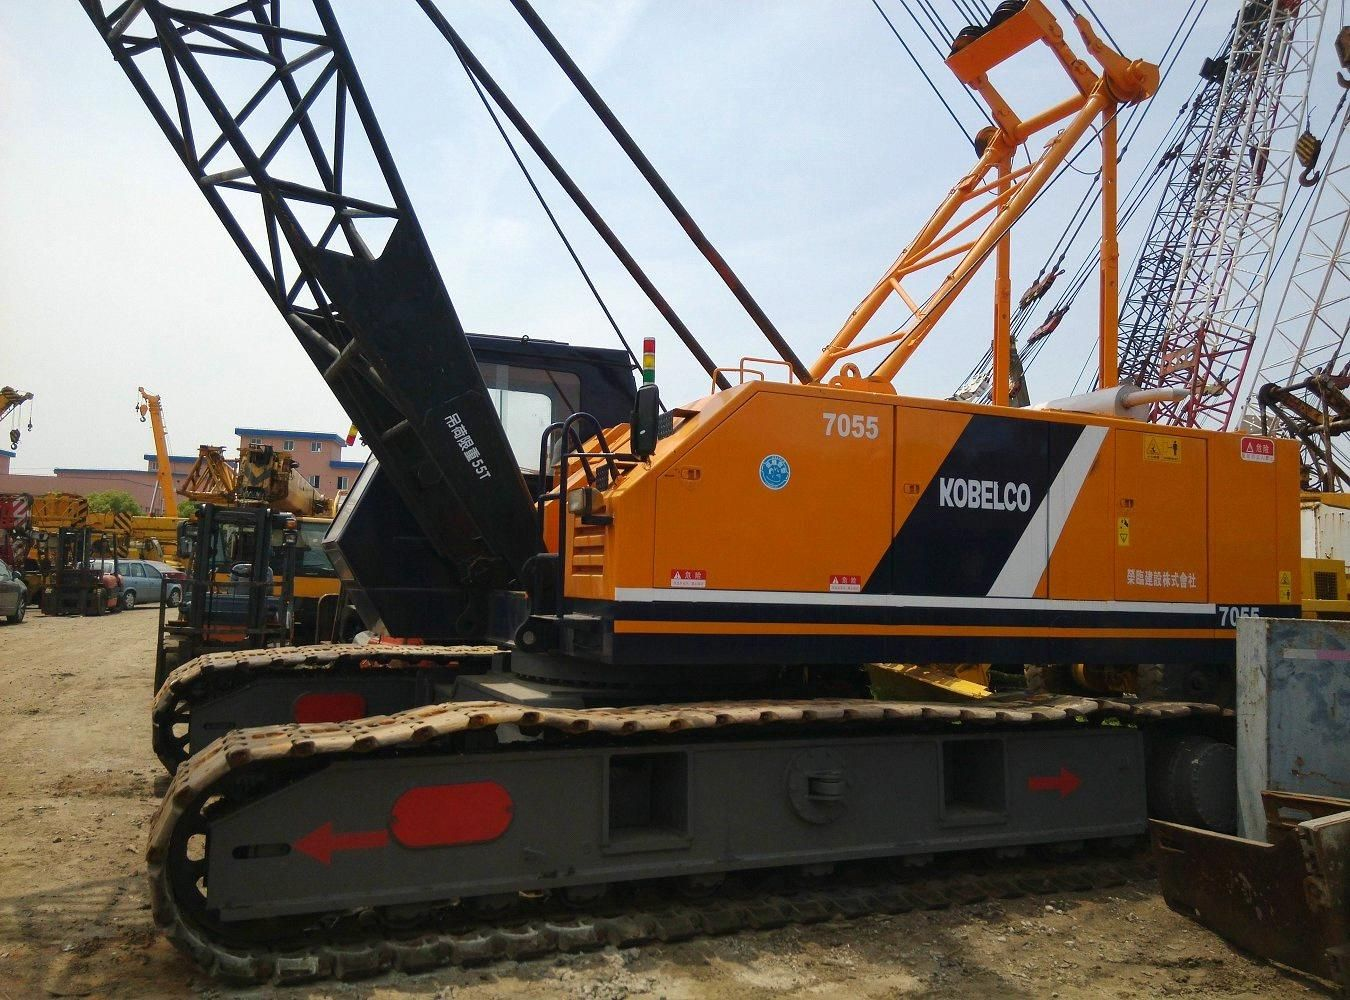 used kobelco 50t crawler crane model 7055 original from